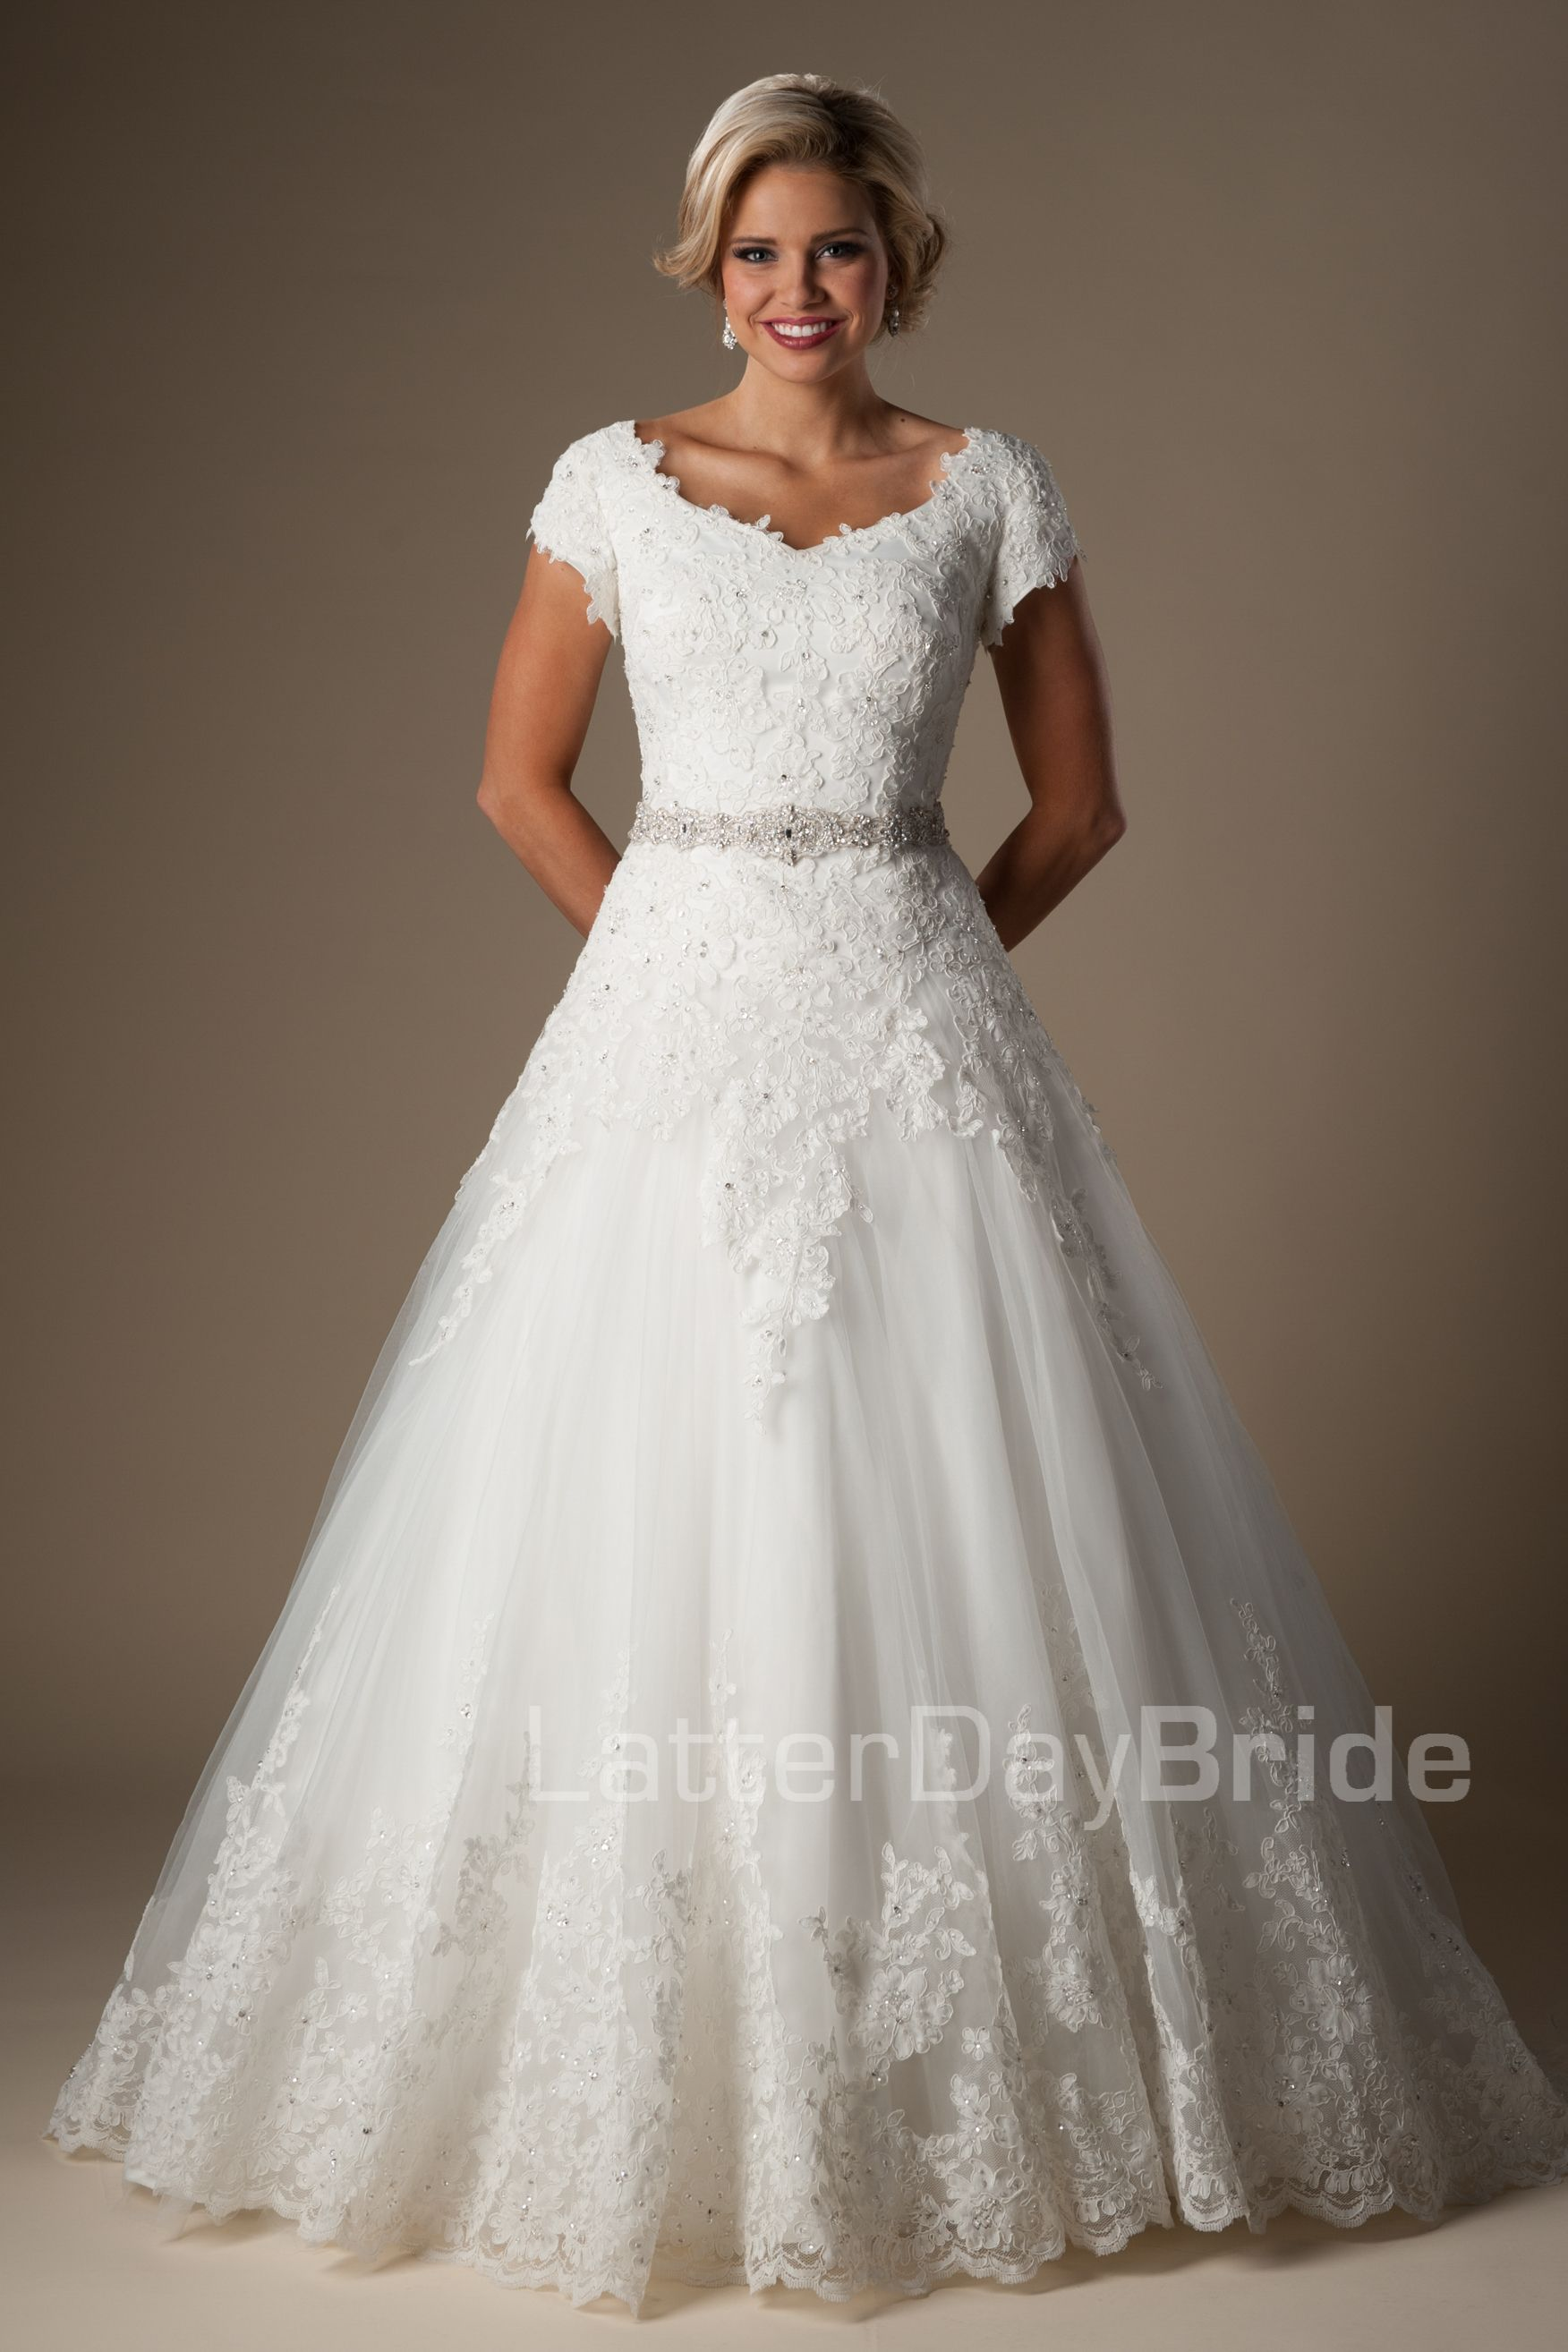 Modest Wedding Dresses : Billingham | Brides! | Pinterest ...